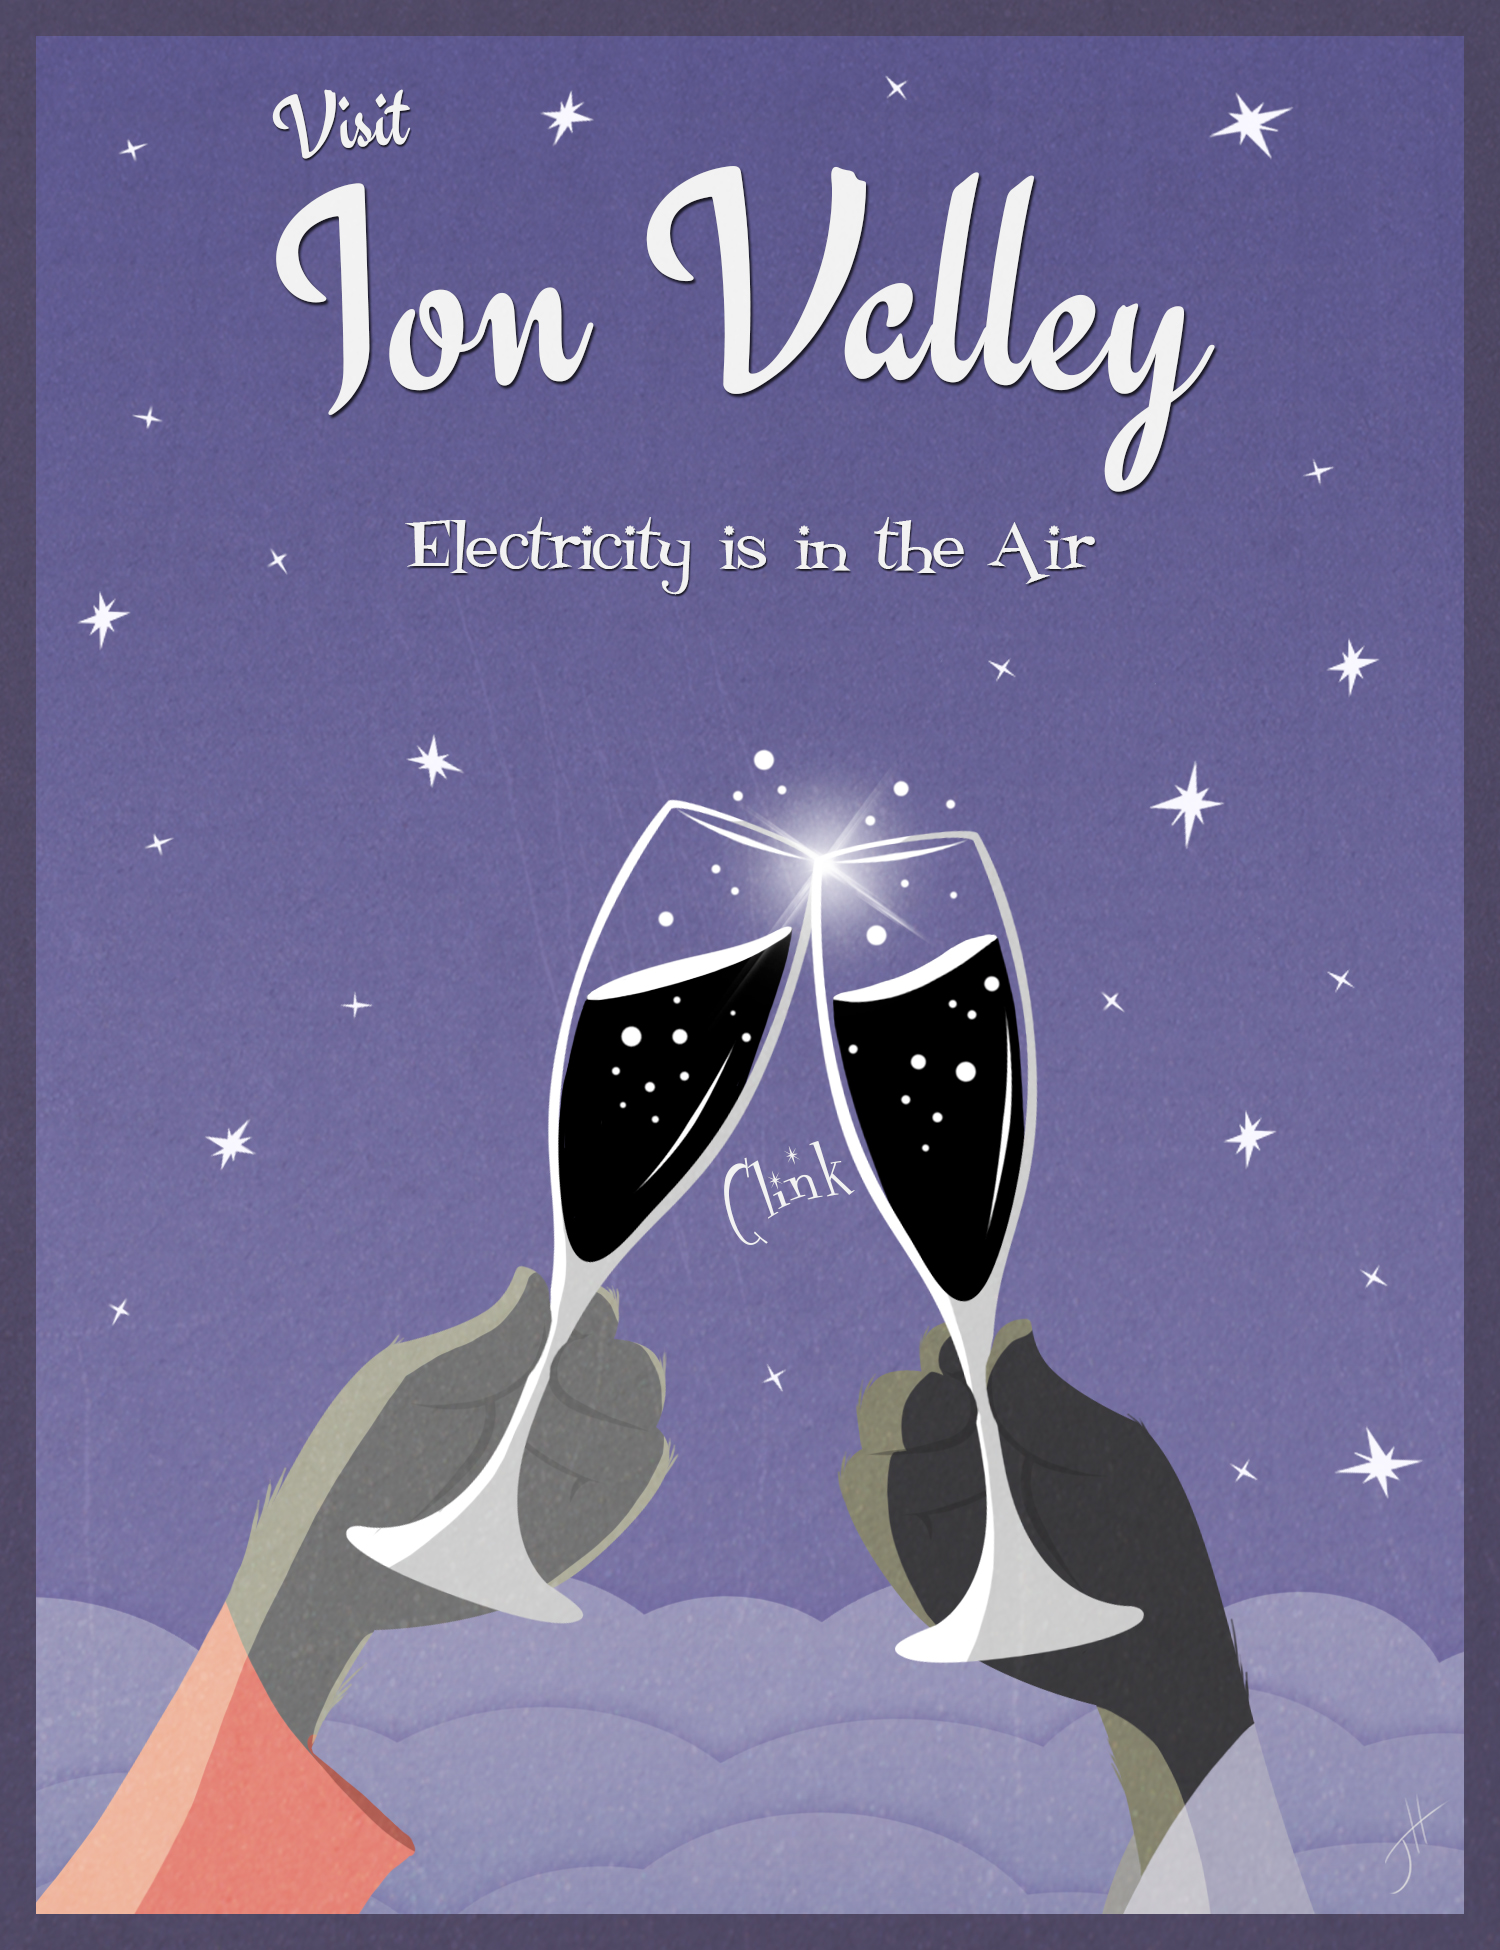 Visit-Ion-Valley